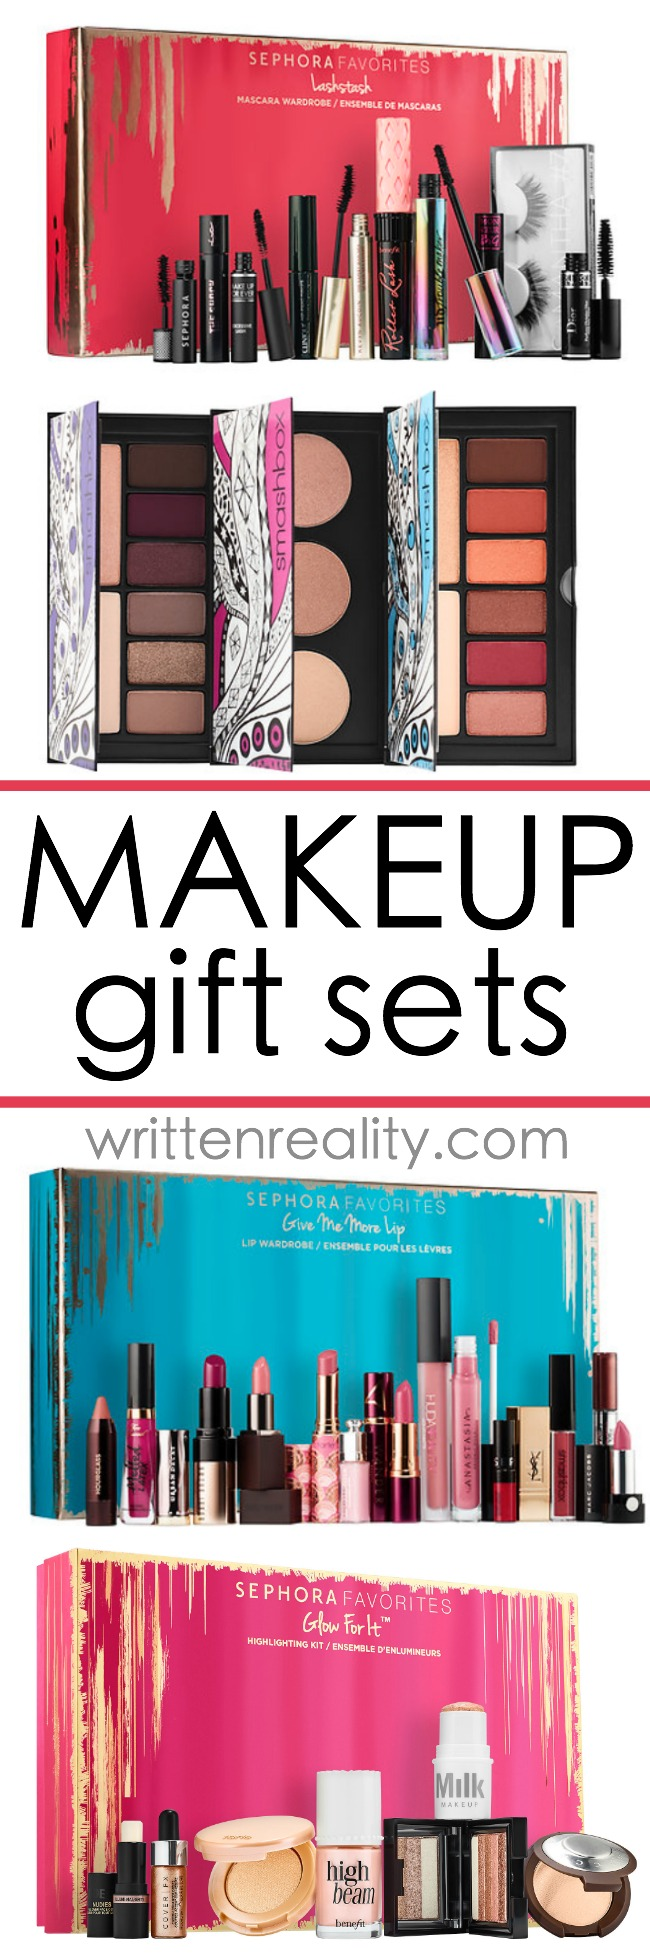 Christmas Makeup Gift Sets.Best Ever Christmas Makeup Gift Sets 2017 Written Reality